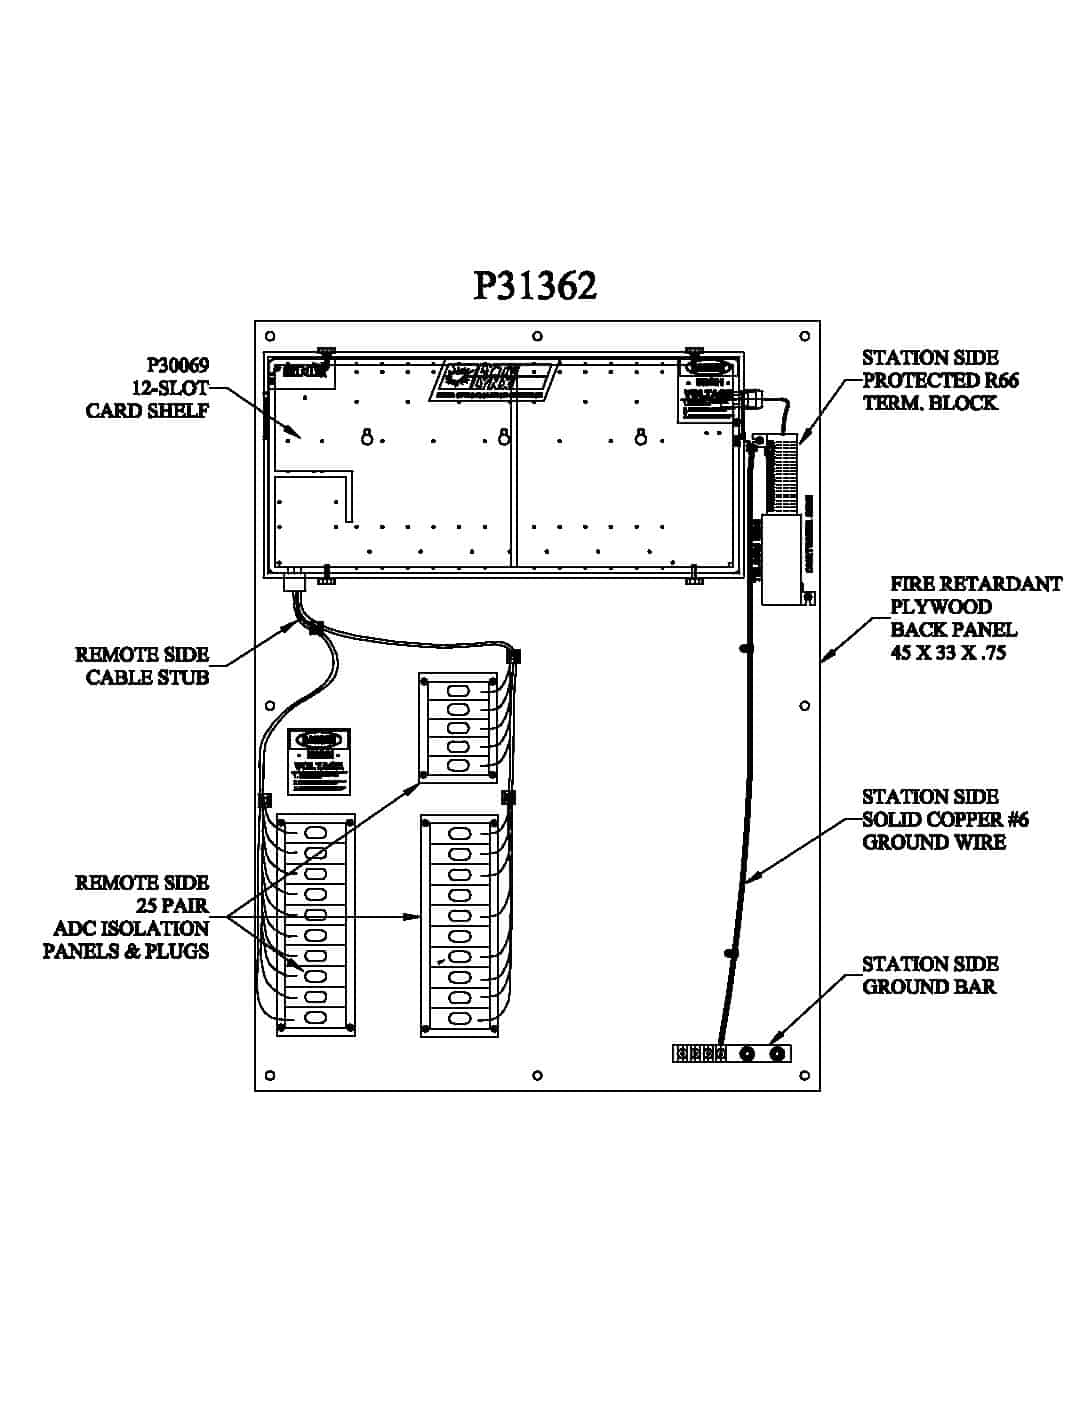 P31362 Turnkey Protection Packages - 12 slot PDF thumbnail